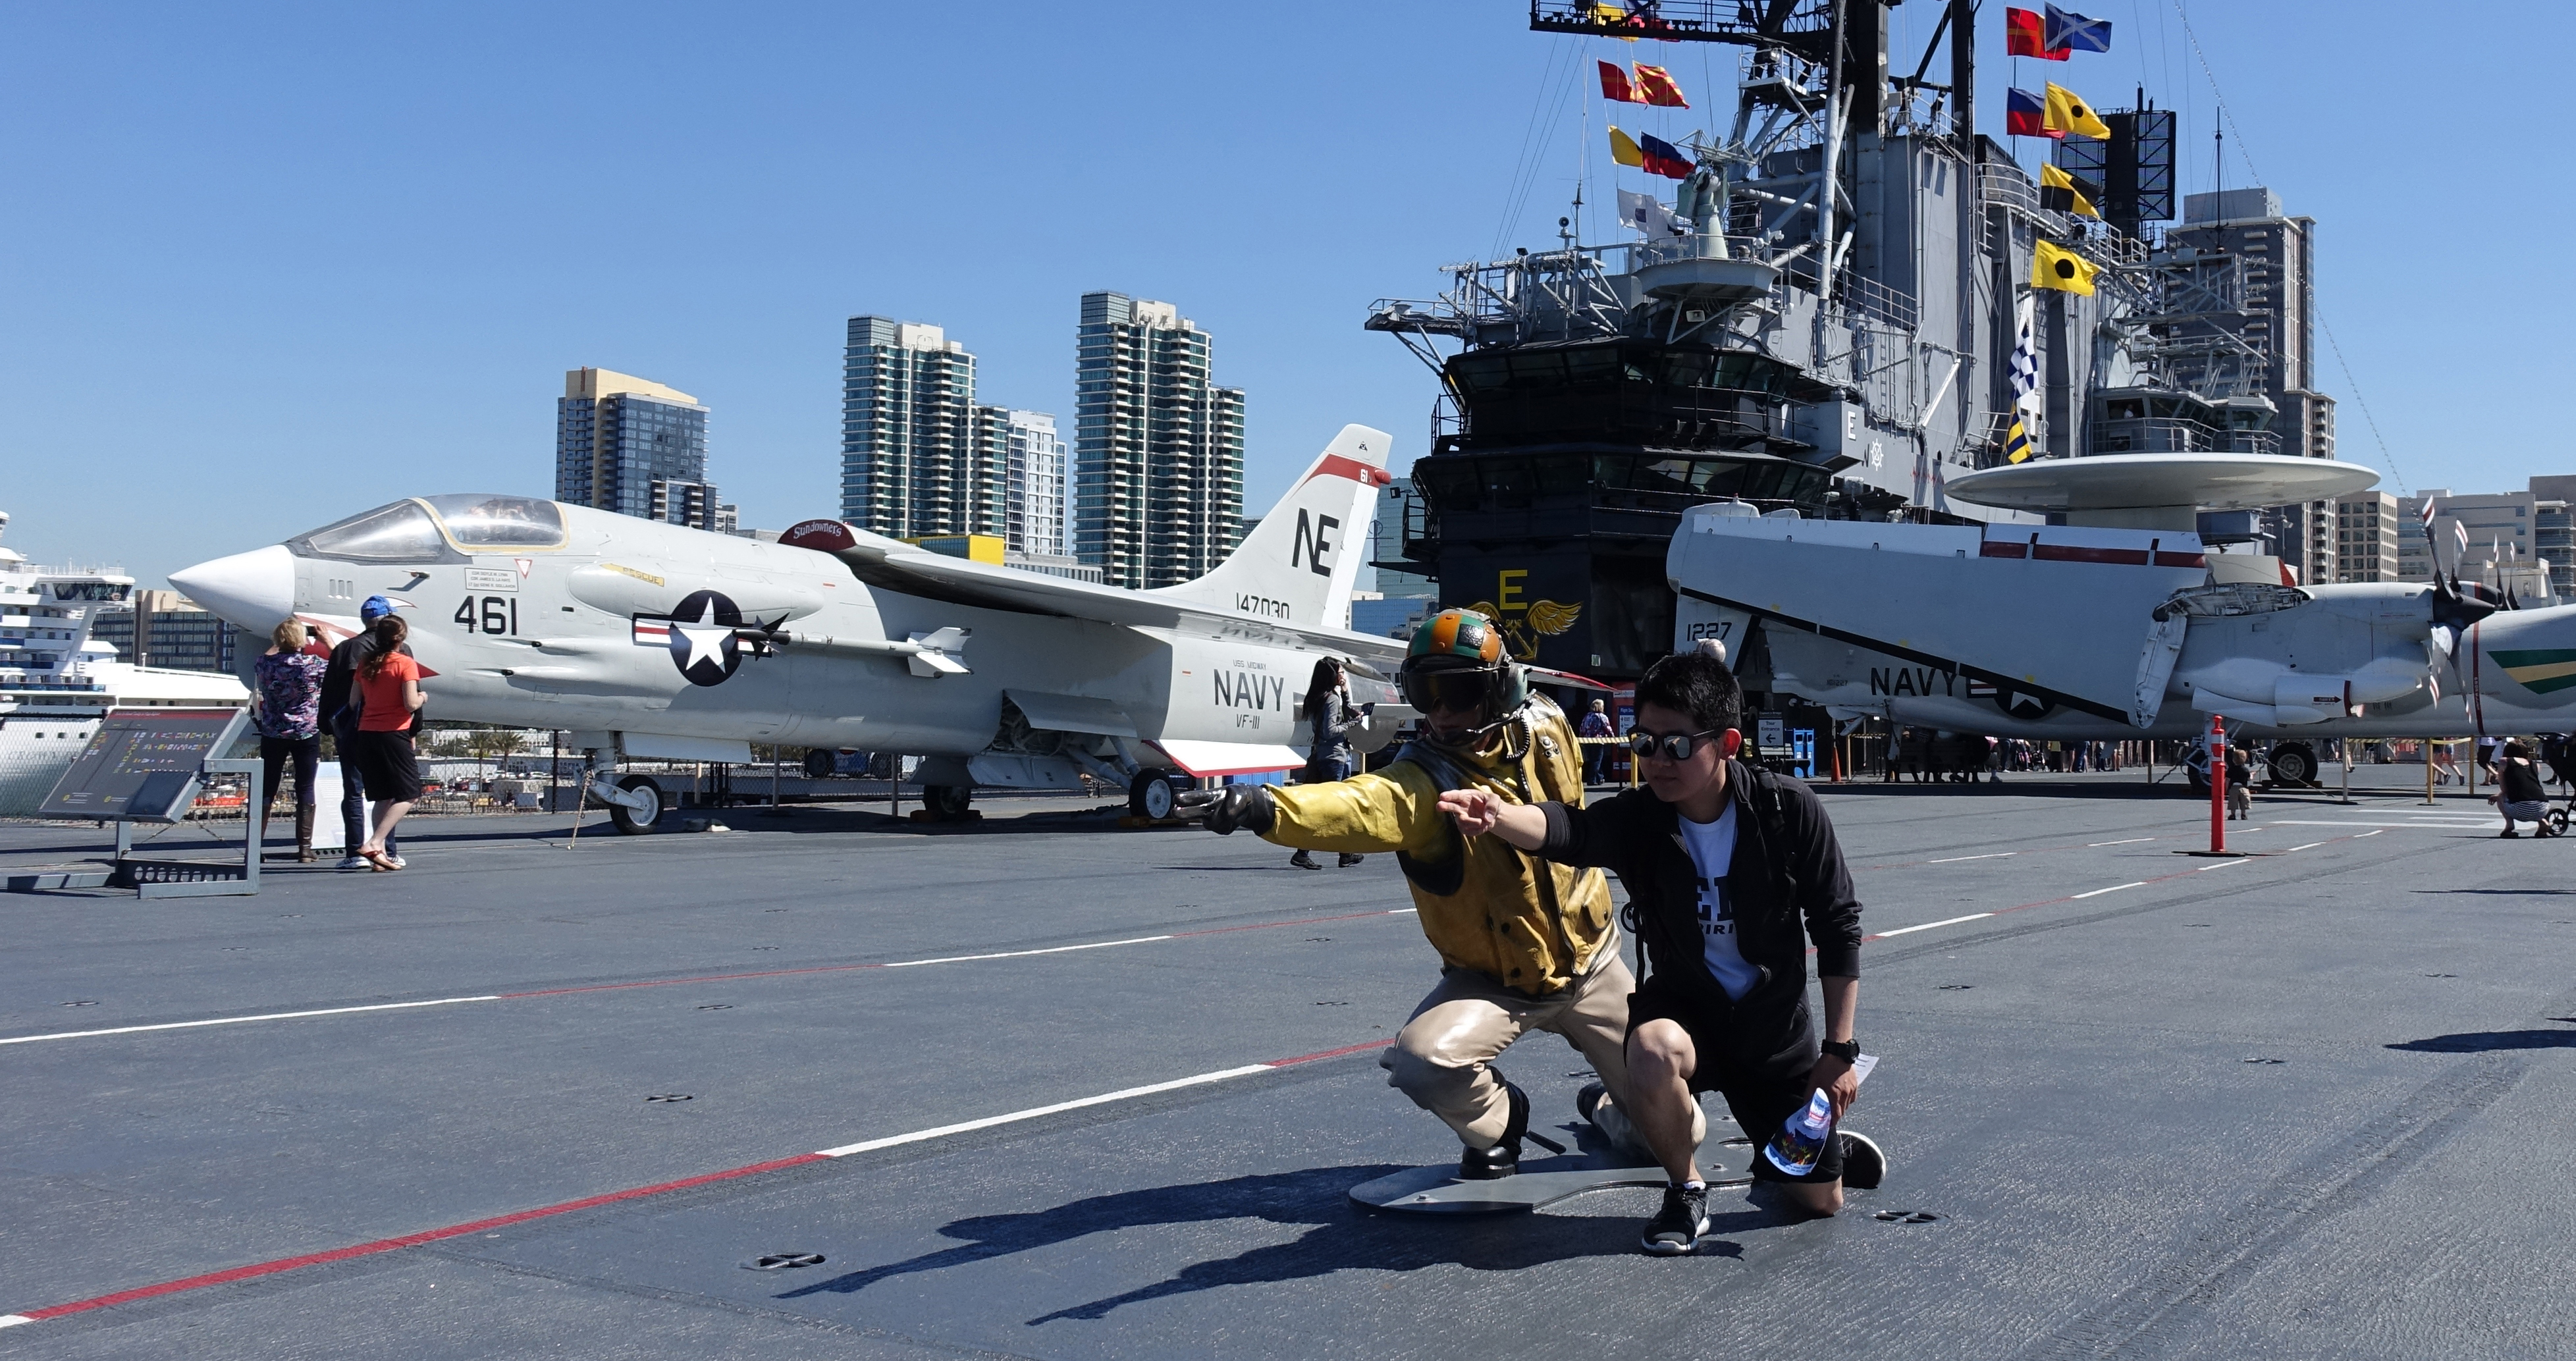 Dongwhan Noh, international student from Seoul, South Korea, travel San Diego USS Midway Museum during spring break.